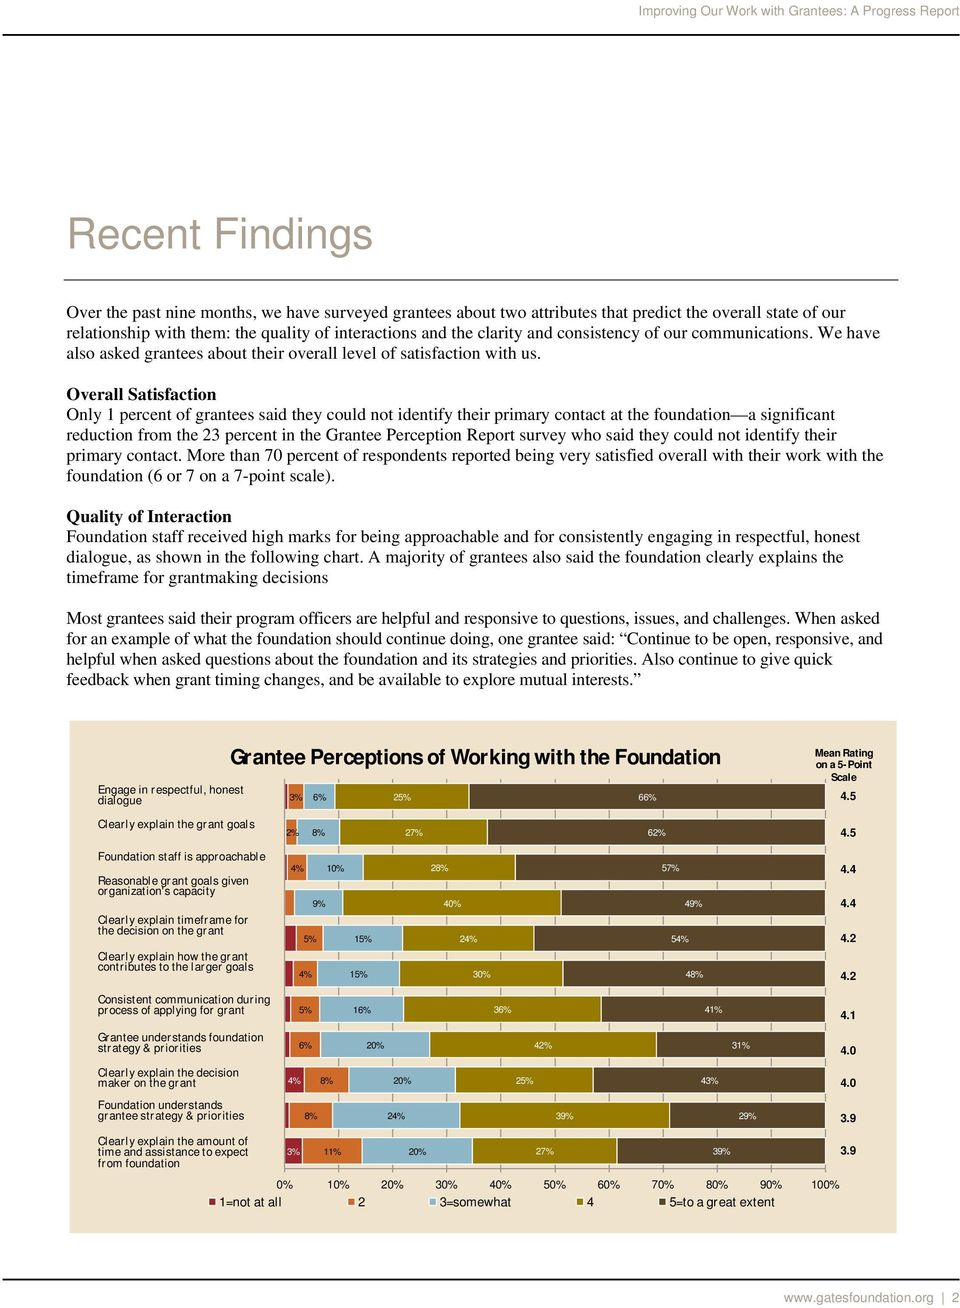 Overall Satisfaction Only 1 percent of grantees said they could not identify their primary contact at the foundation a significant reduction from the 23 percent in the Grantee Perception Report